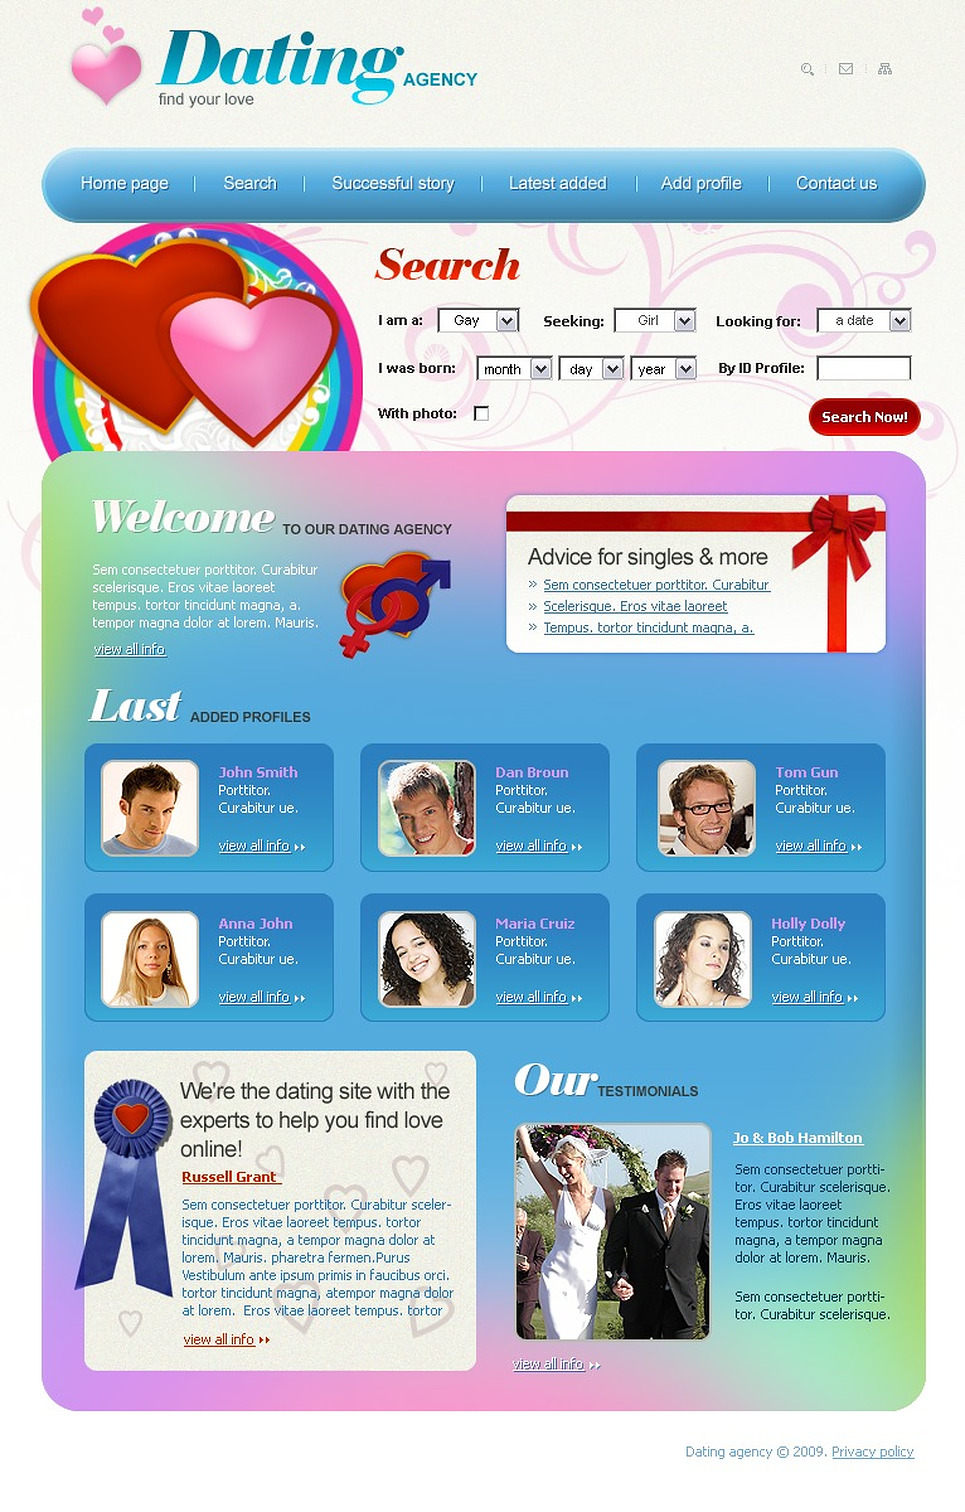 dating website layout Graphic design & website design projects for $30 - $250 i need html5 design for dating site on urgently basisi need below pages 1 home page 2 messaging system 3.